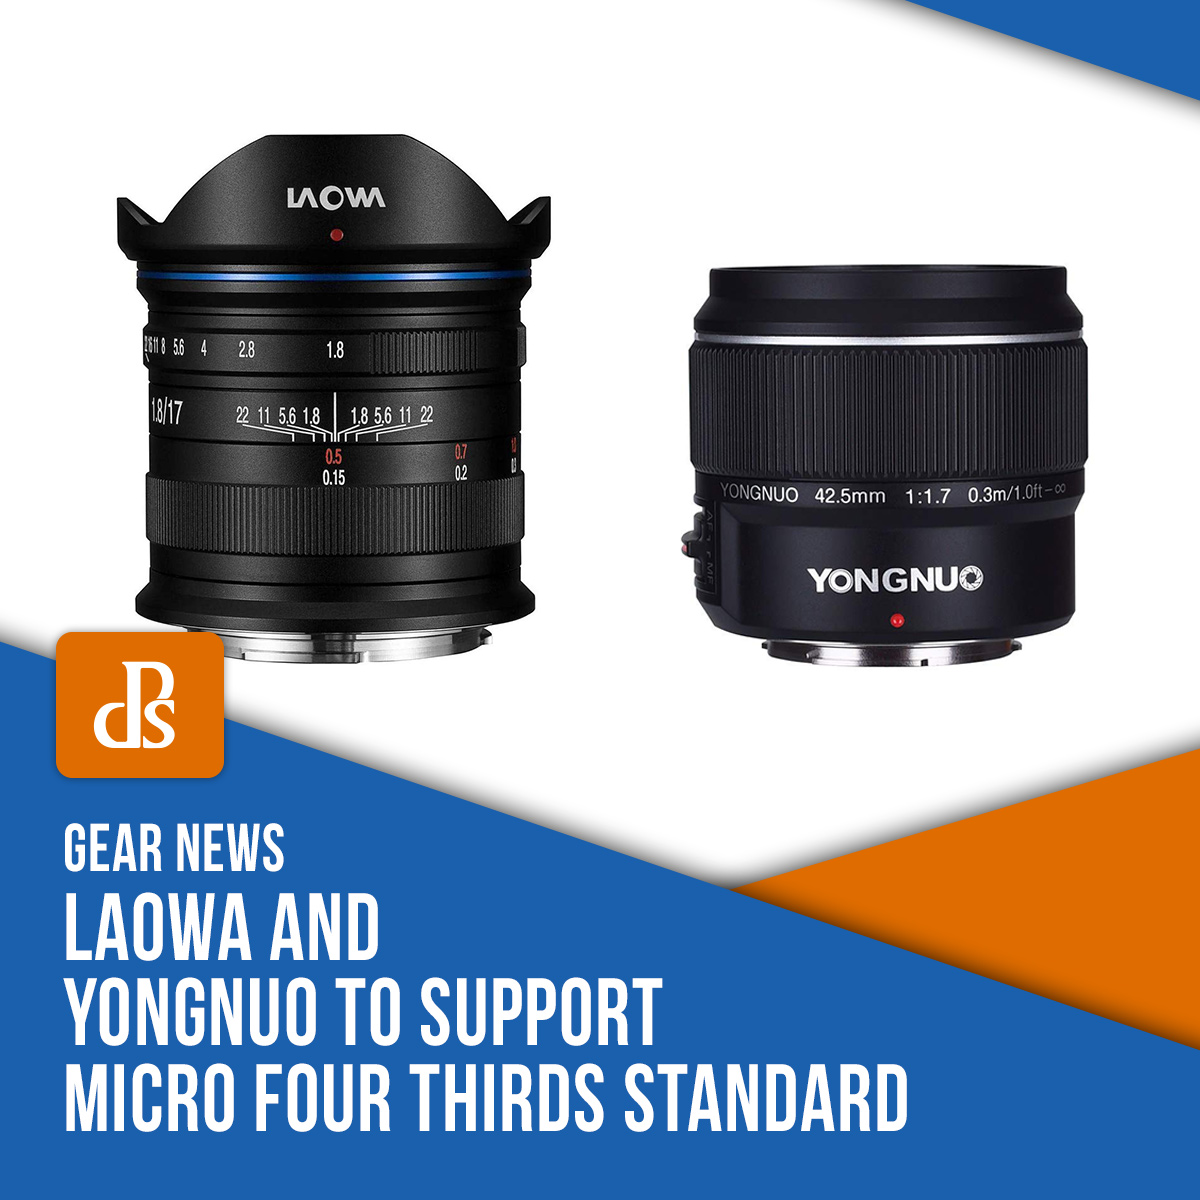 laowa-yongnuo-micro-four-thirds-standard